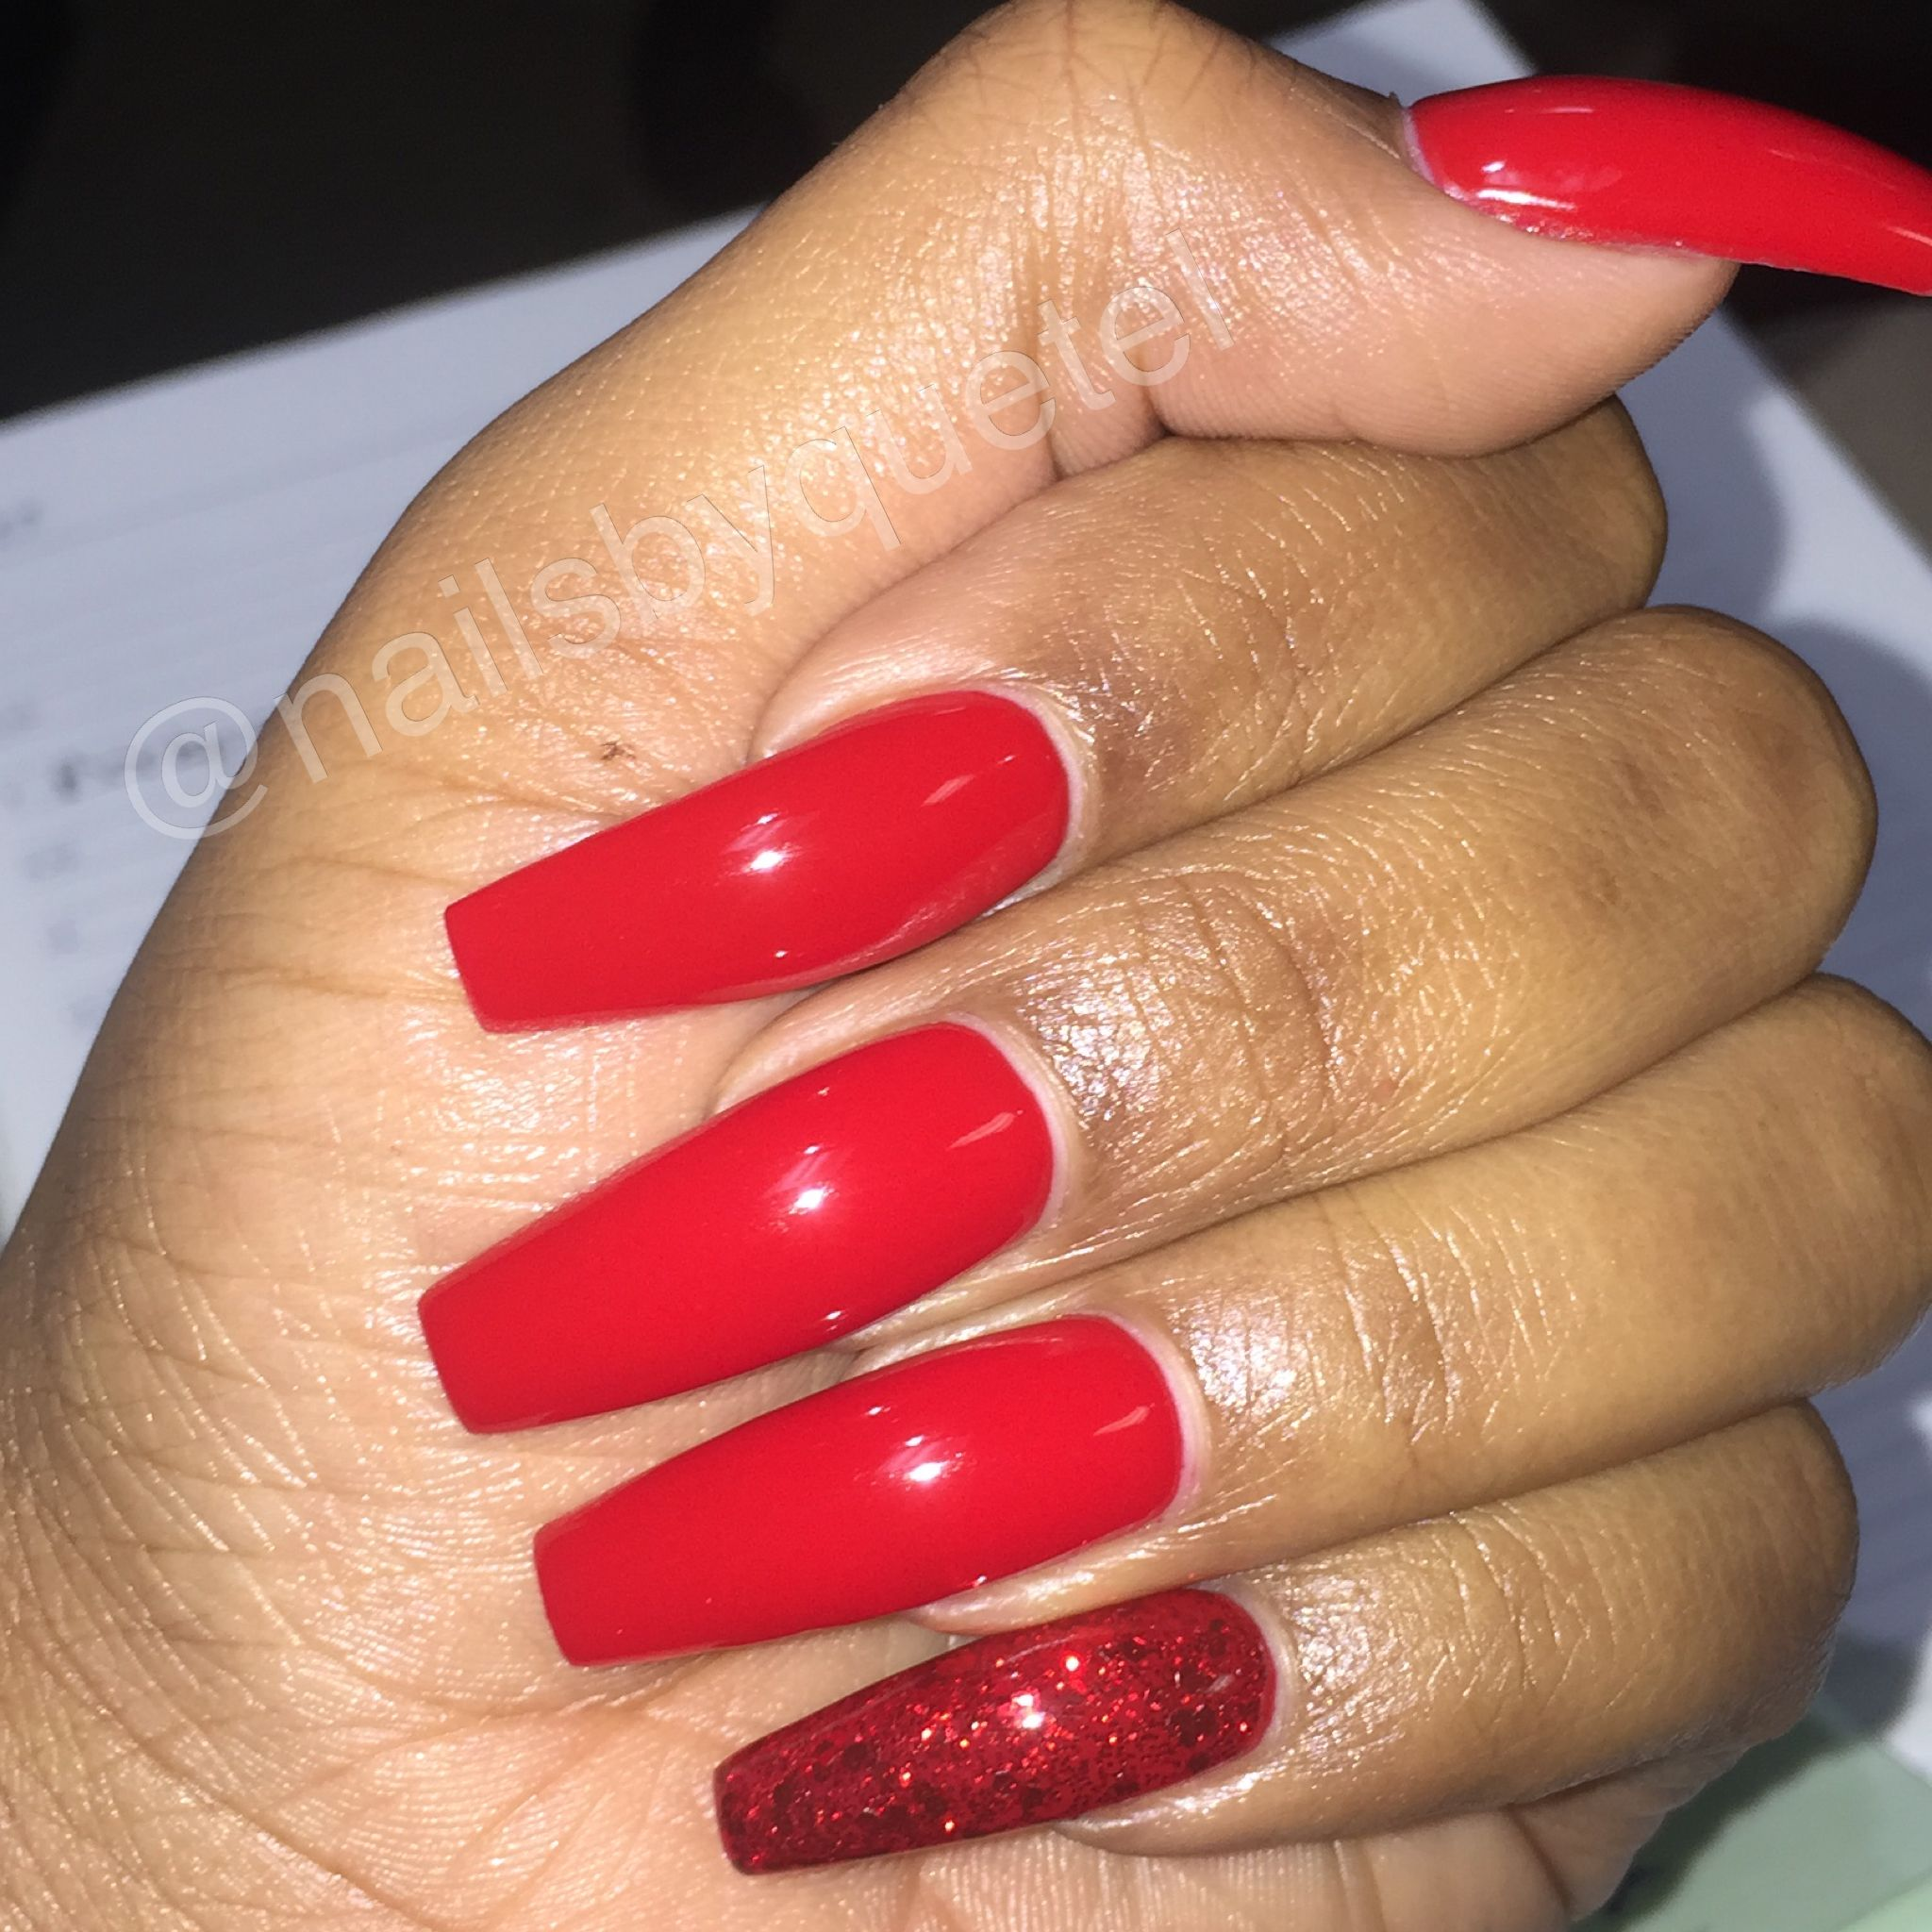 Red coffin shape nails, red glitter | NAILS | Pinterest | Red ...